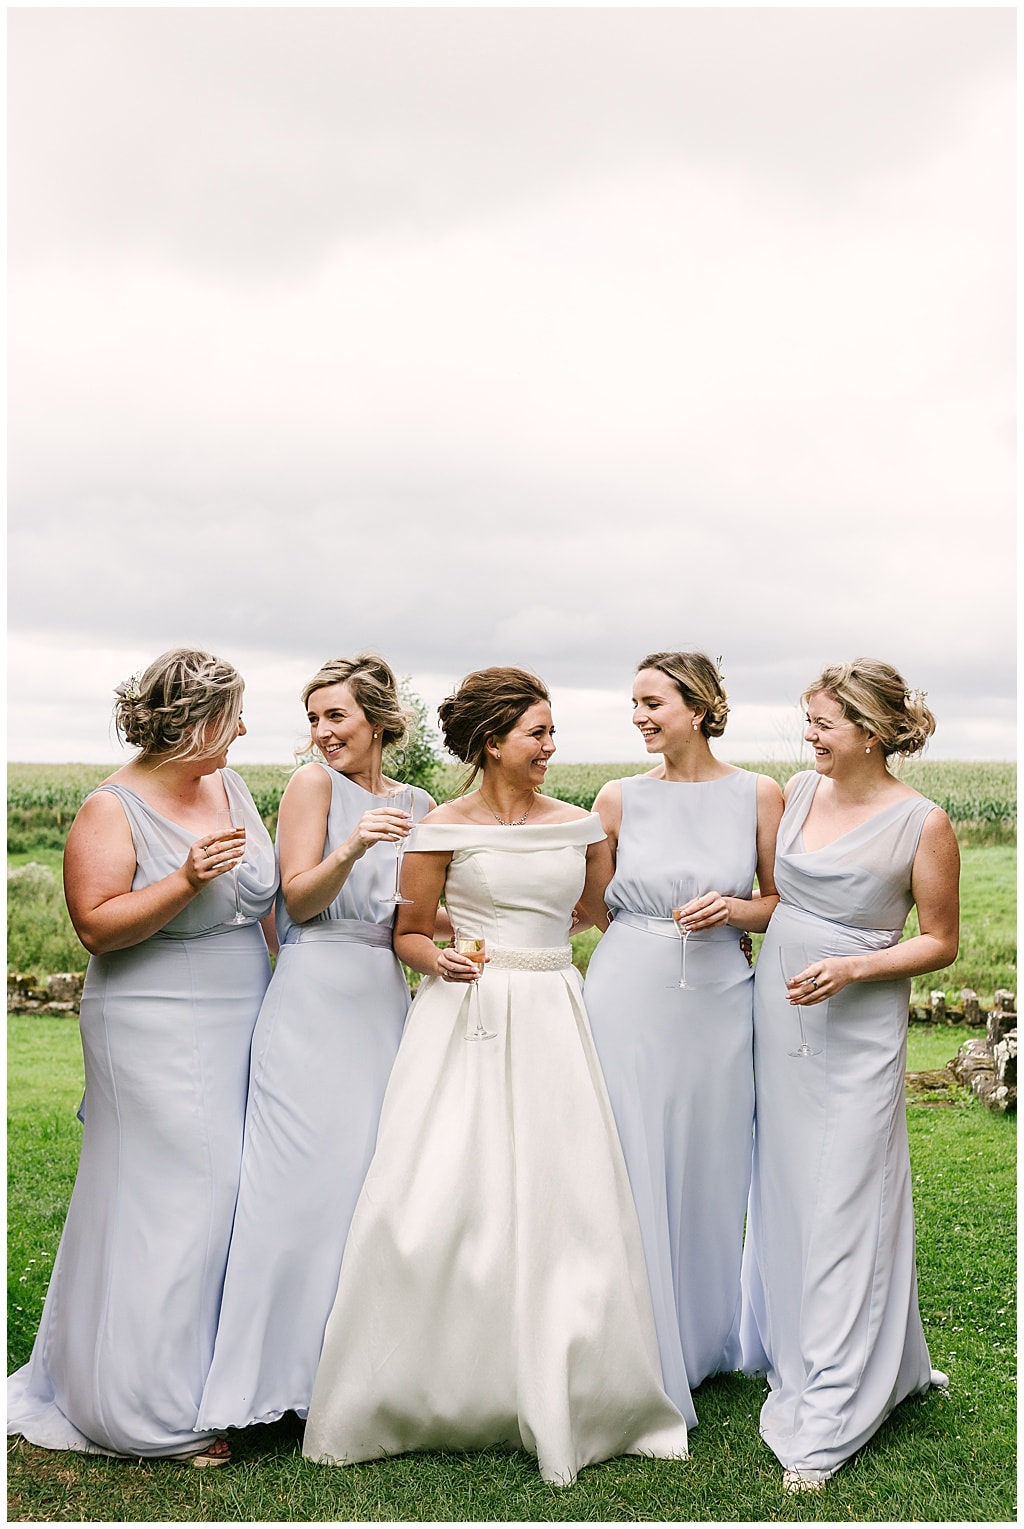 Bride and Bridesmaids at Lilleshall Abbey, Shropshire